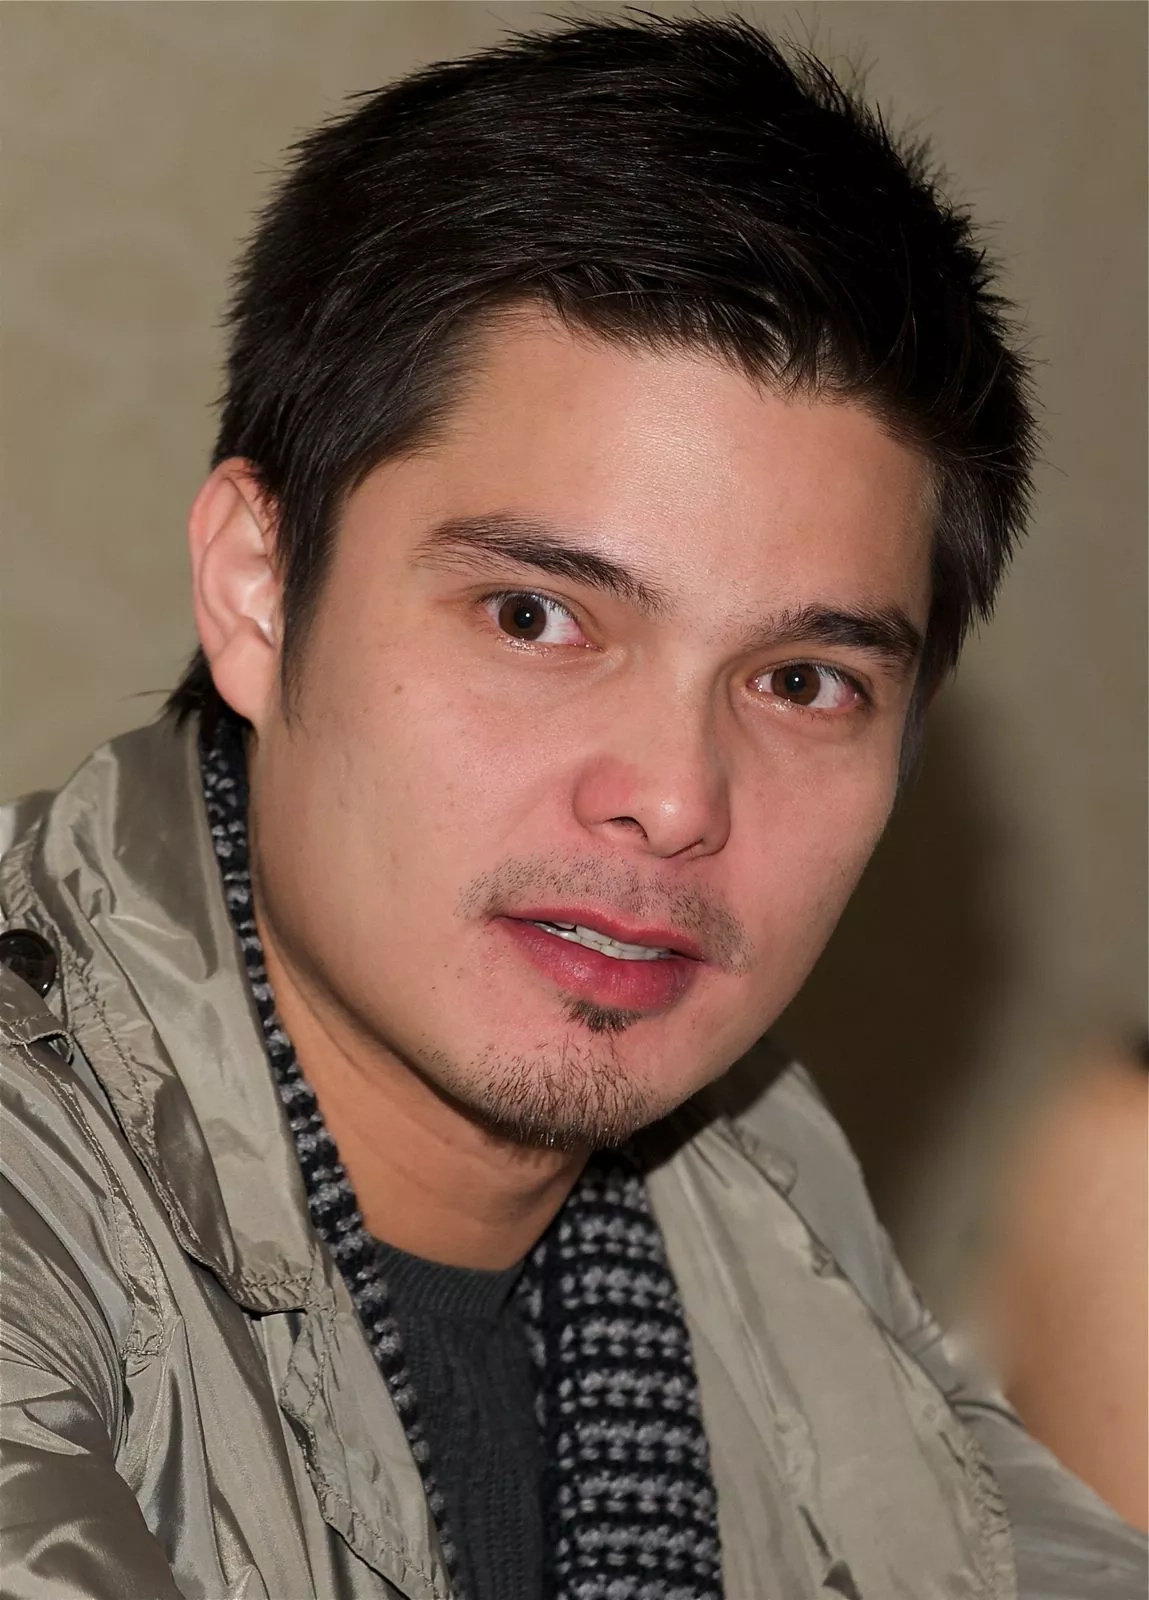 National Youth Commission Says DingDong Dantes Has Not Resigned